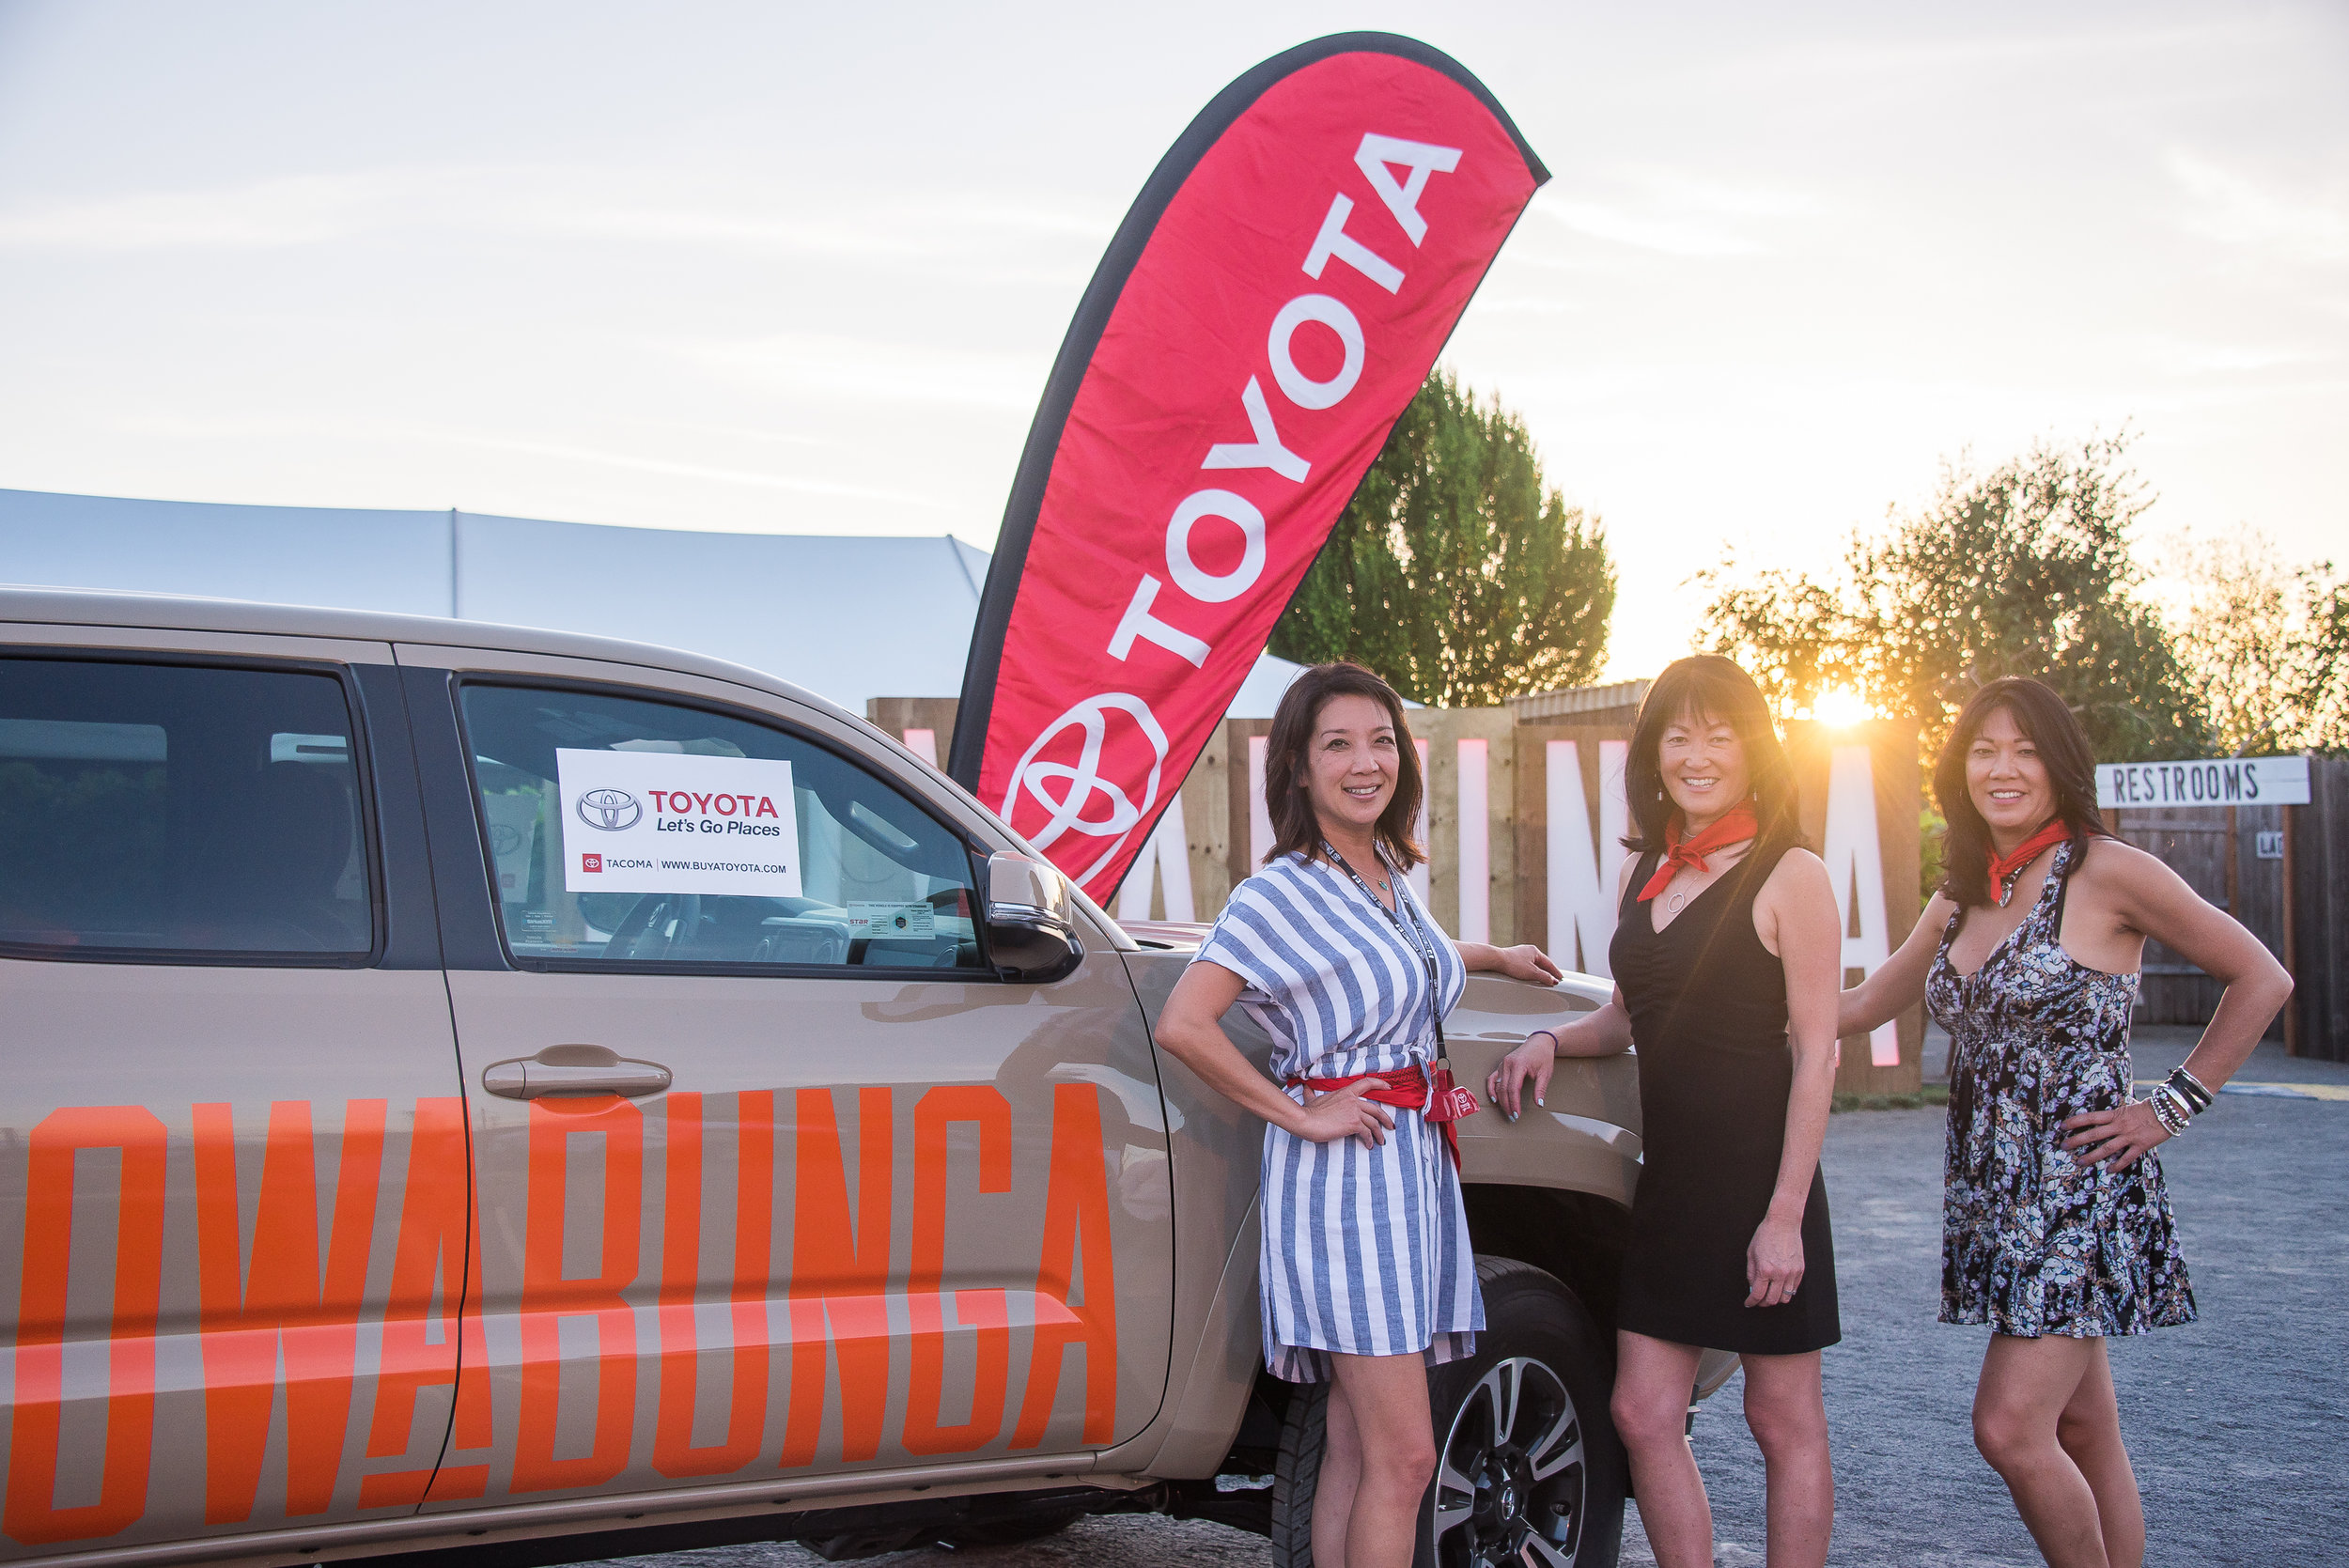 TITLE SPONSOR – SOLD - Thank you to Toyota for hosting as the Title Sponsor for Cowabunga.